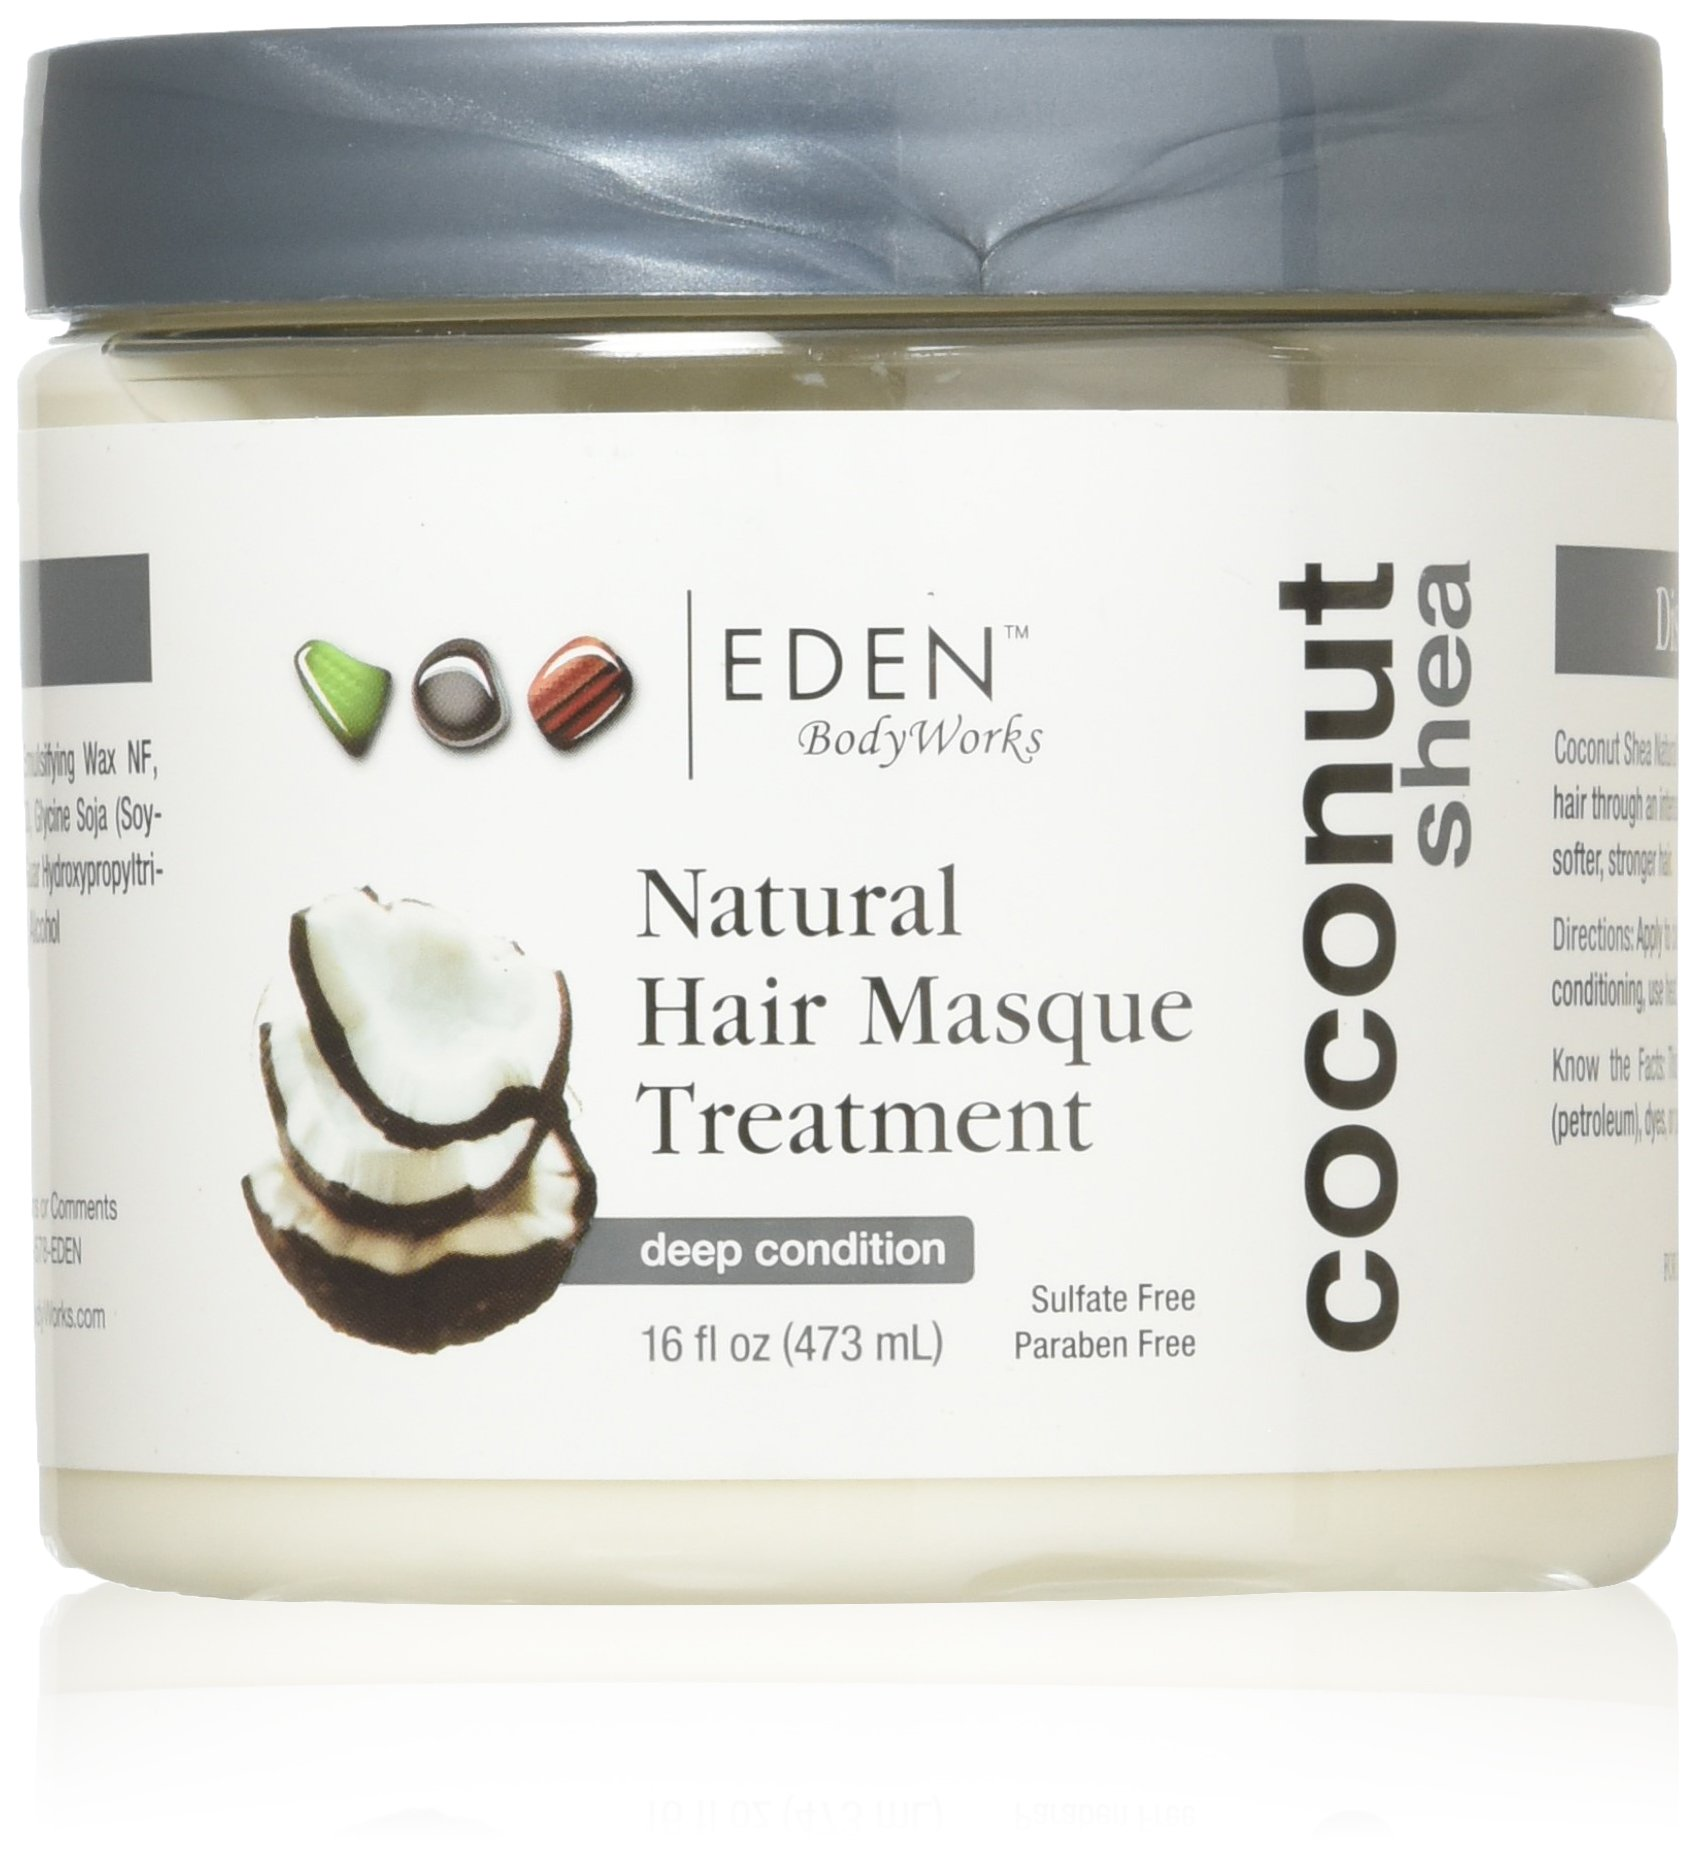 EDEN BodyWorks Coconut Shea Hair Masque Treatment, 16oz